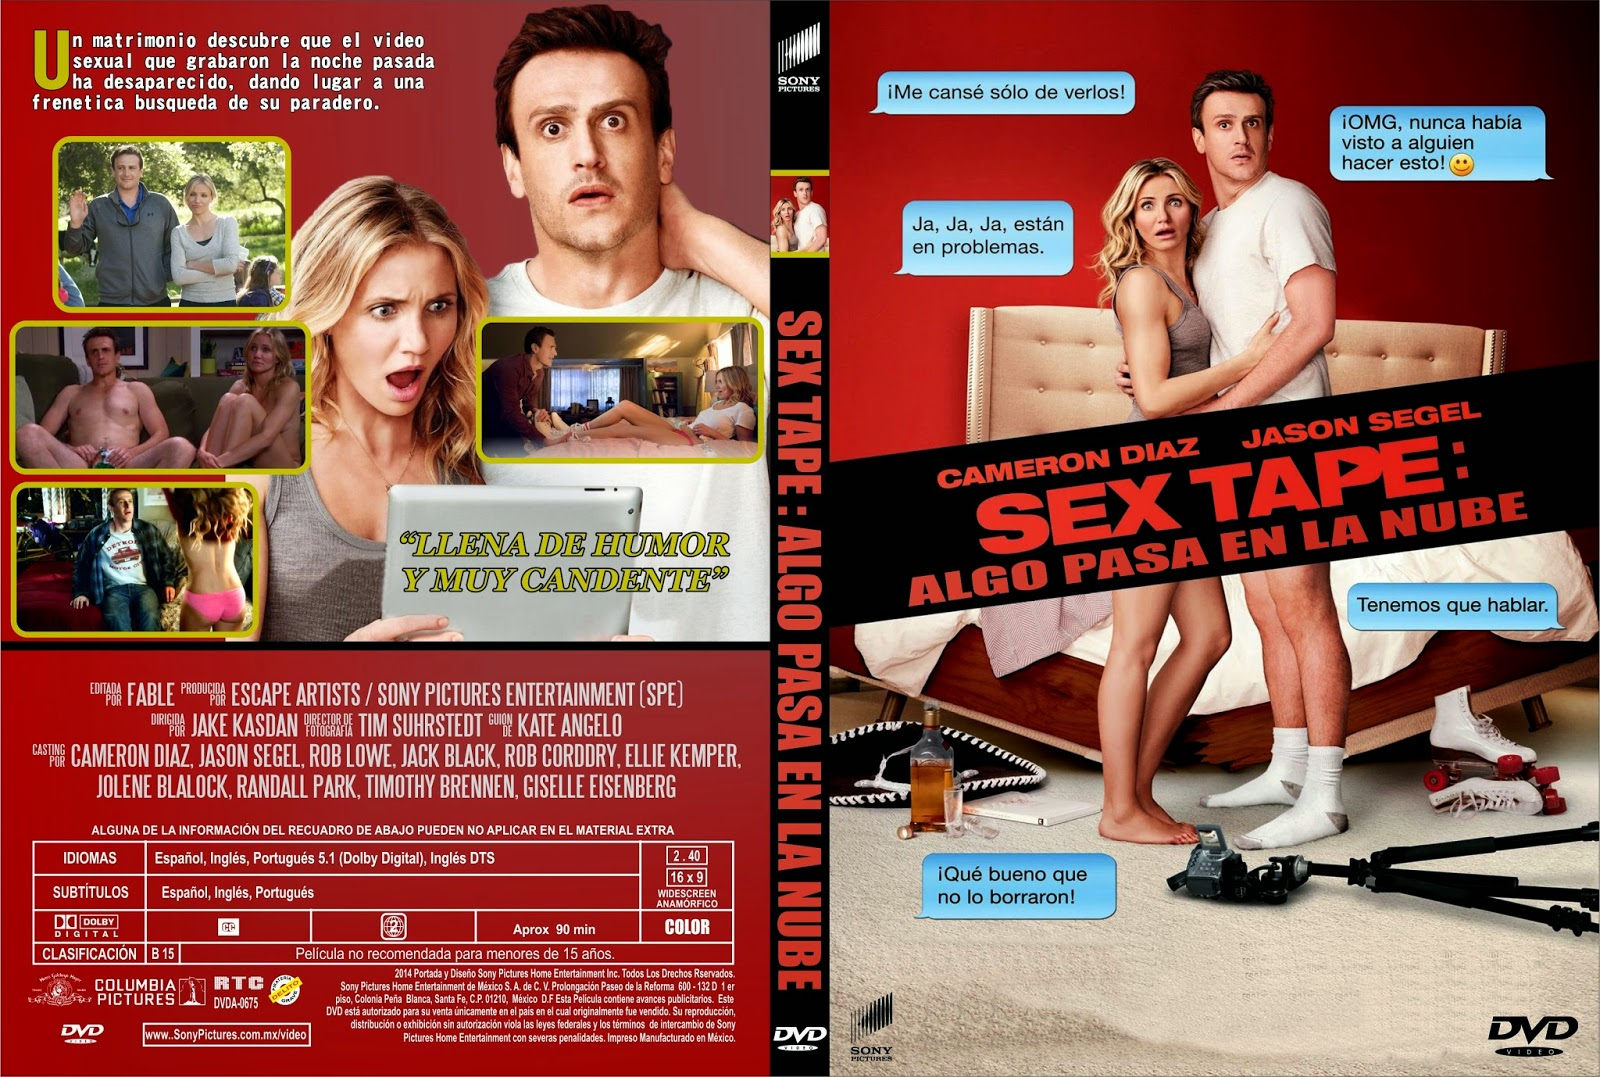 Sex Tape Algo Pasa En La Nube DVD